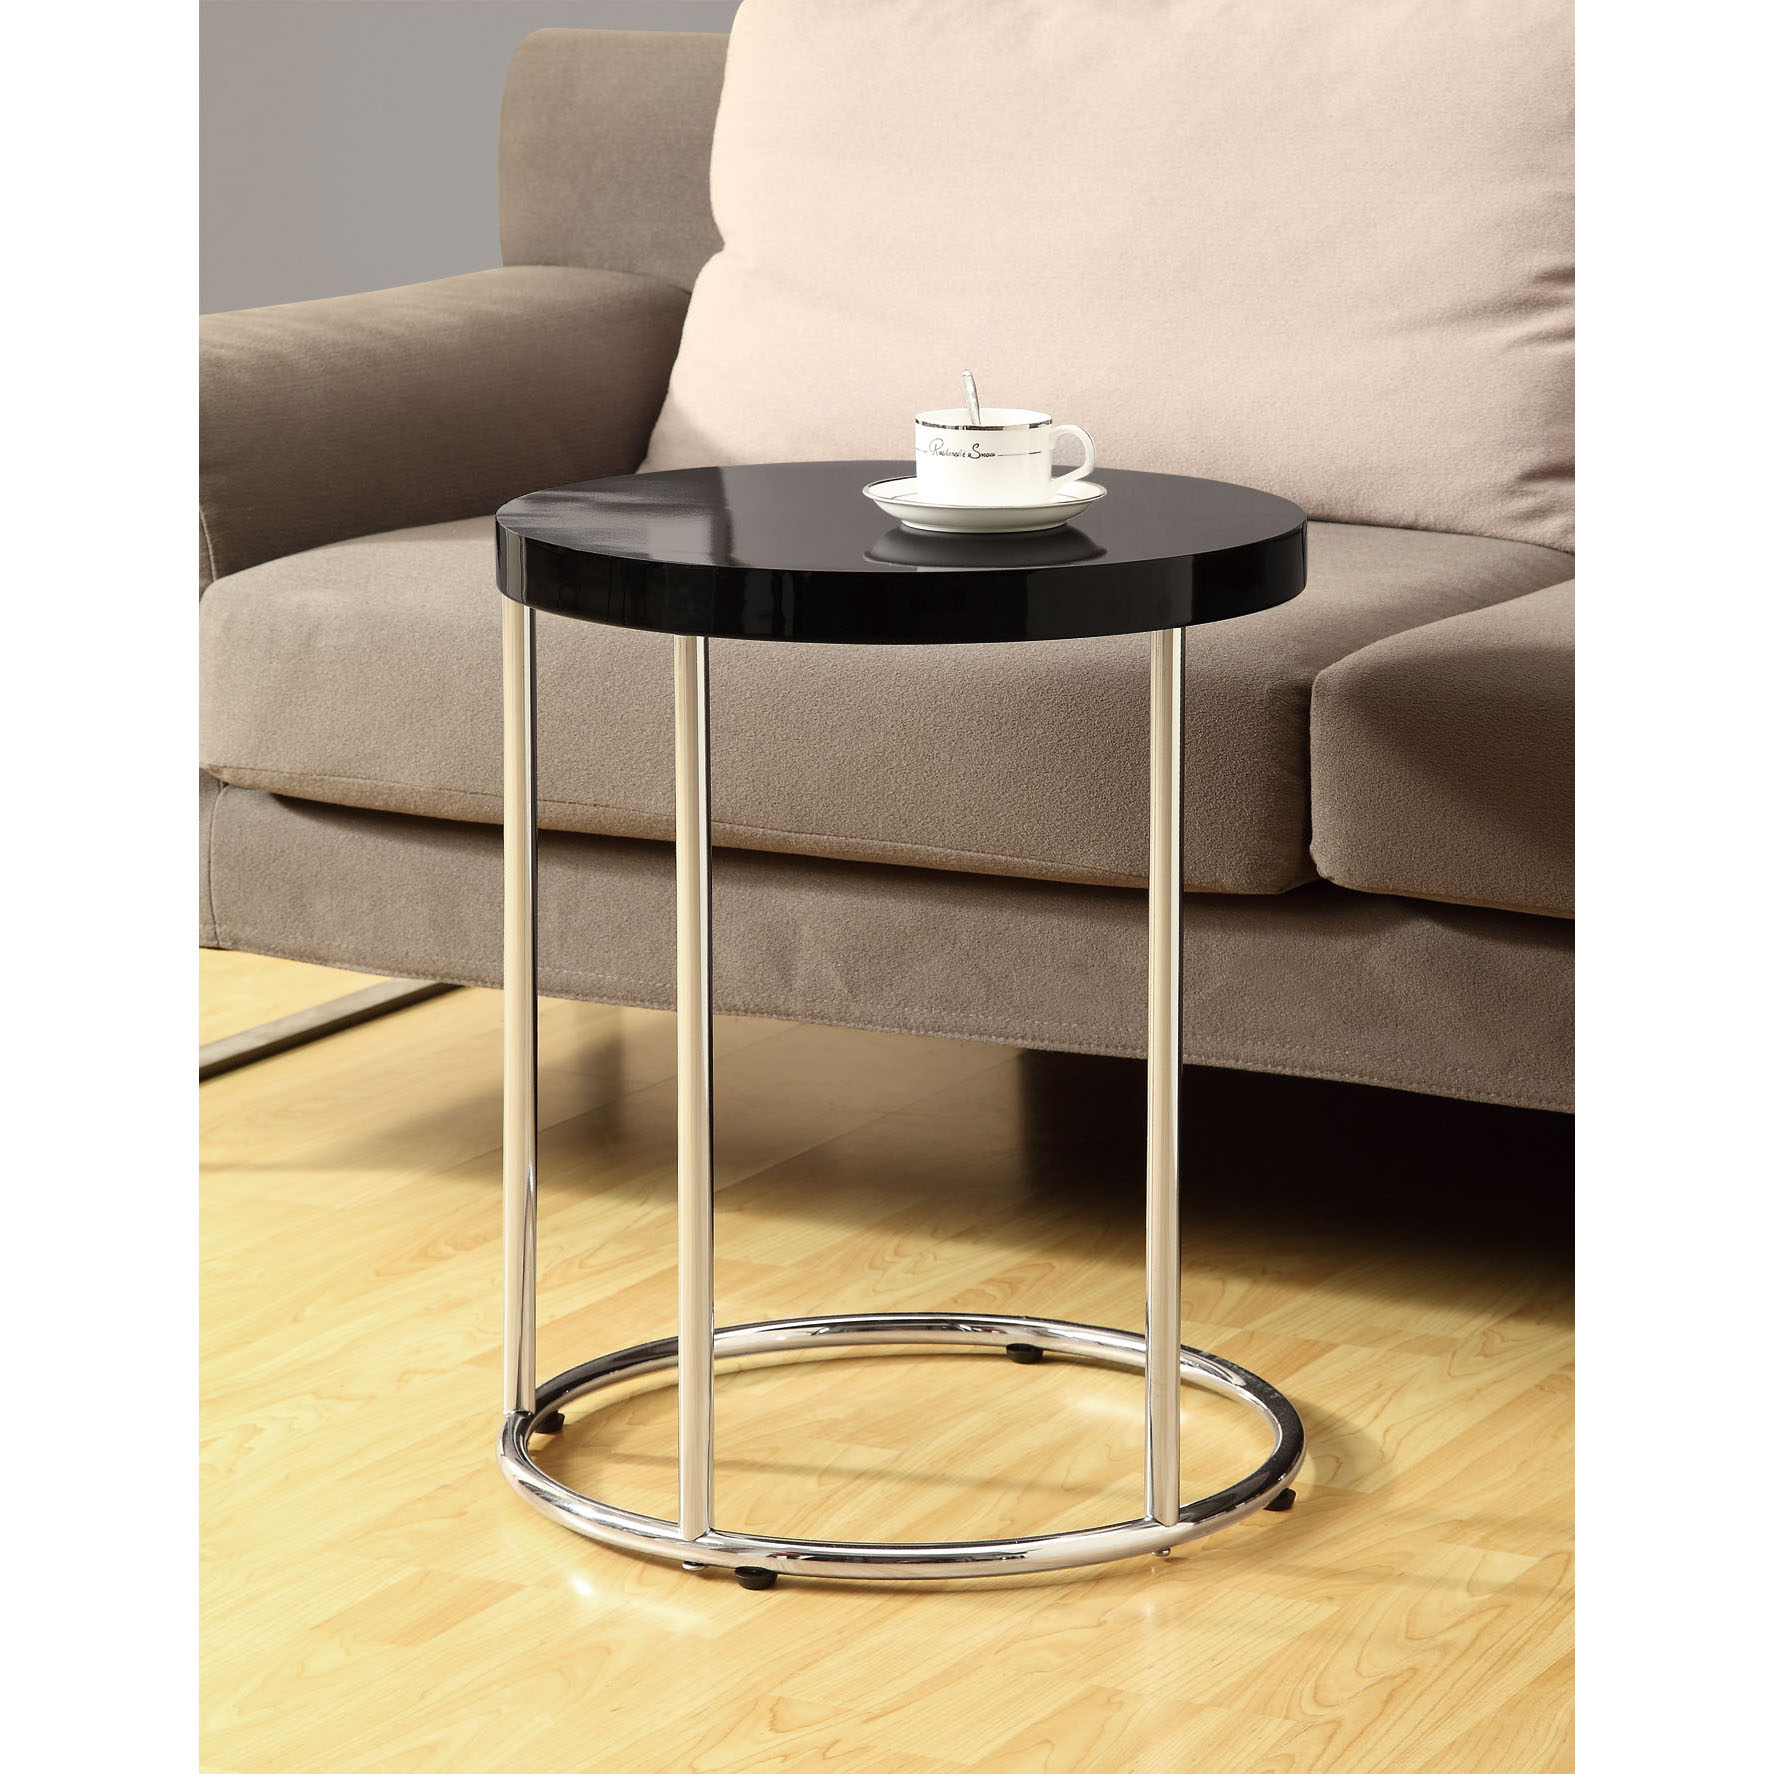 brilliant metal accent table with frosted glass top elegant glossy black chrome free shipping today round brass west elm arch lamp lamps asian design grey nest tables ikea outdoor